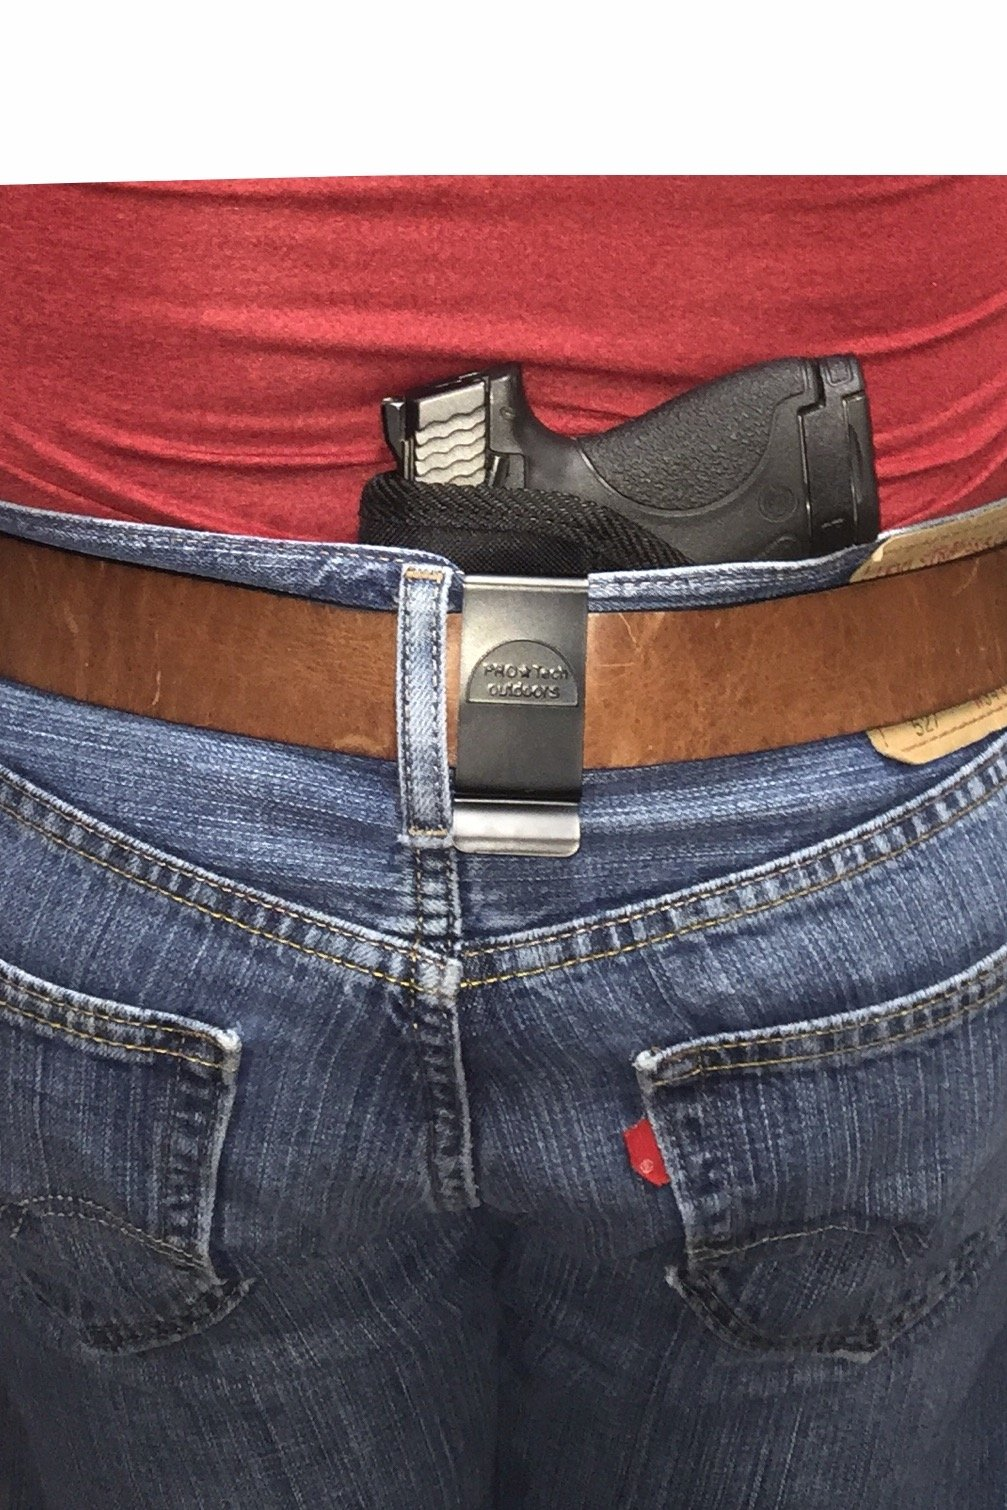 Pro-Tech Outdoors Concealed In the Pants/waistband Holster Fits Glock 17,19,20,21,22,23,25,26,27,28,29,30,31,32,33,36,38,39,40,41,42